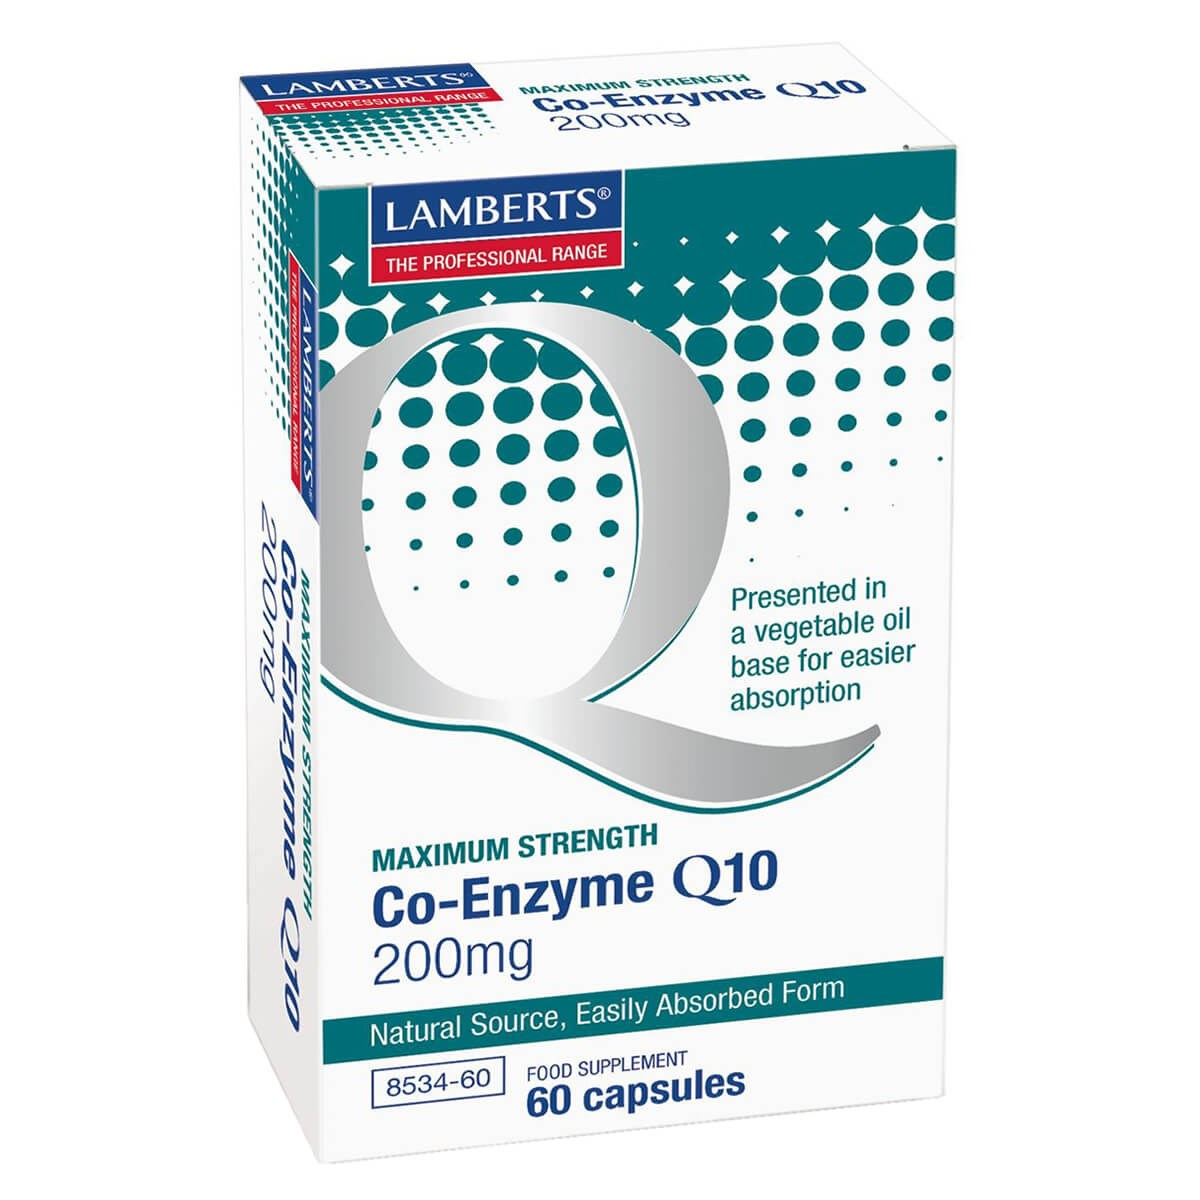 Lamberts Co-Enzyme Q10 200mg